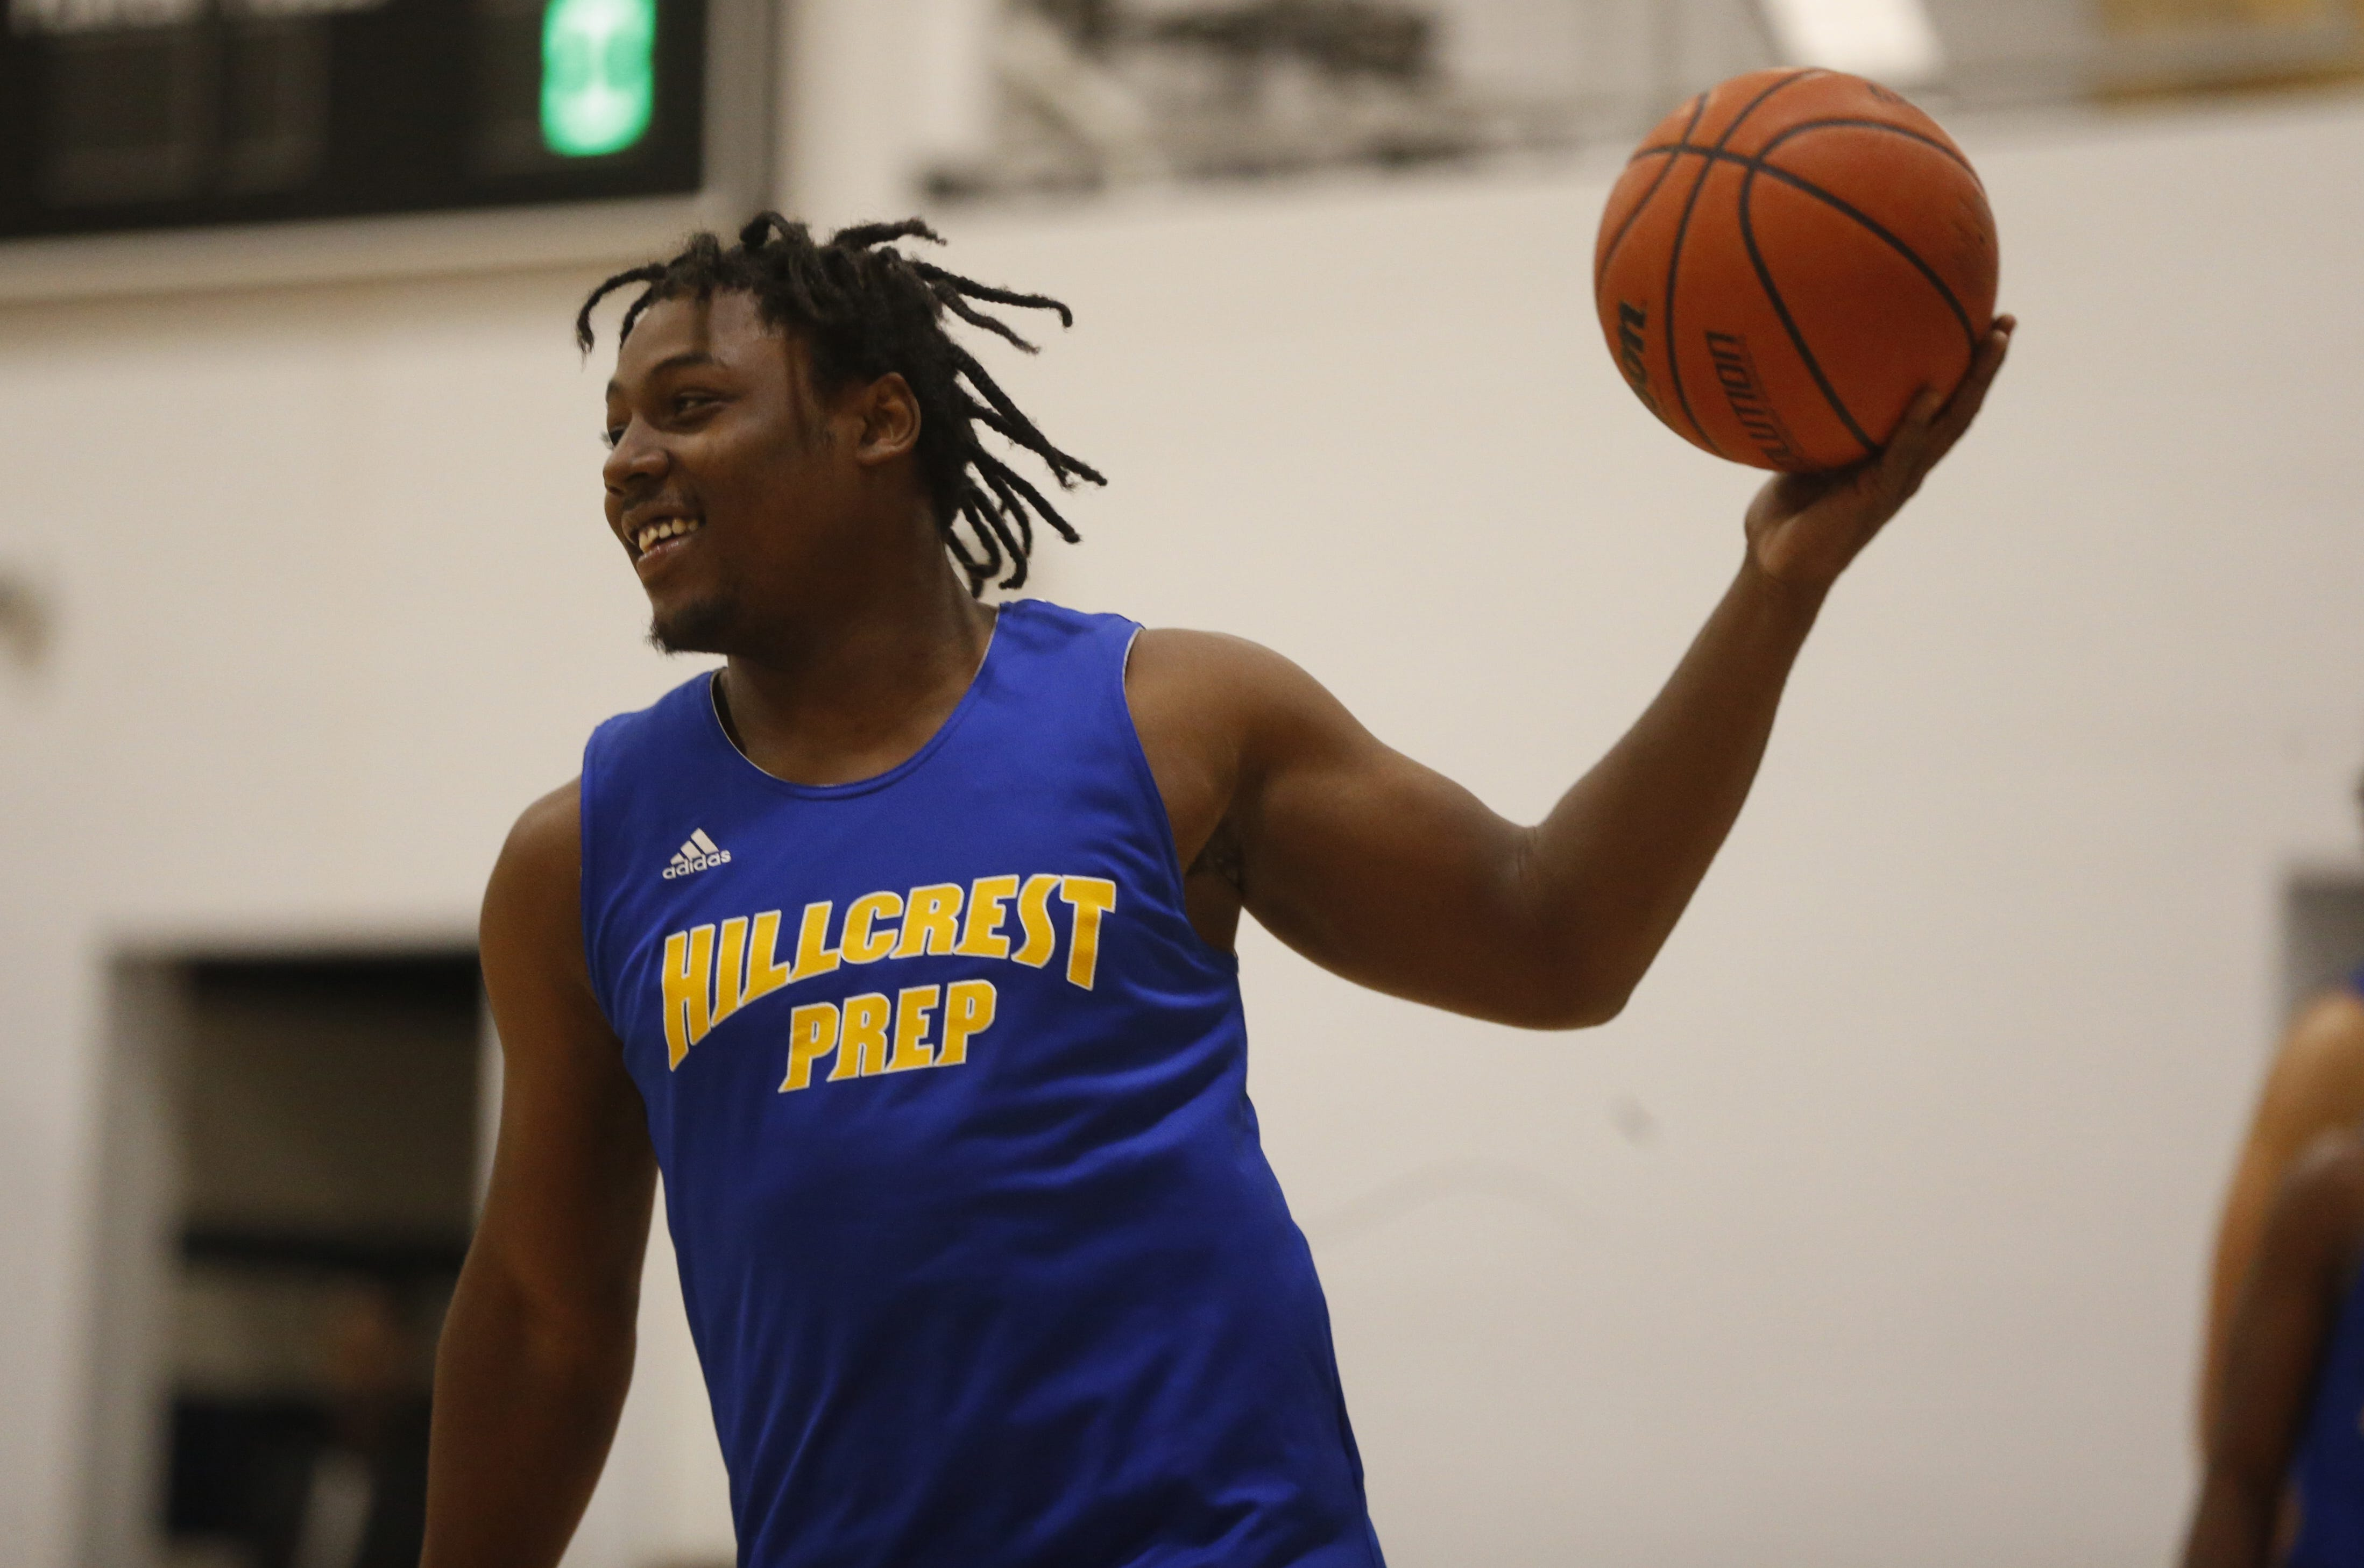 Michael Rogers' long, winding basketball road takes him to Hillcrest Prep North